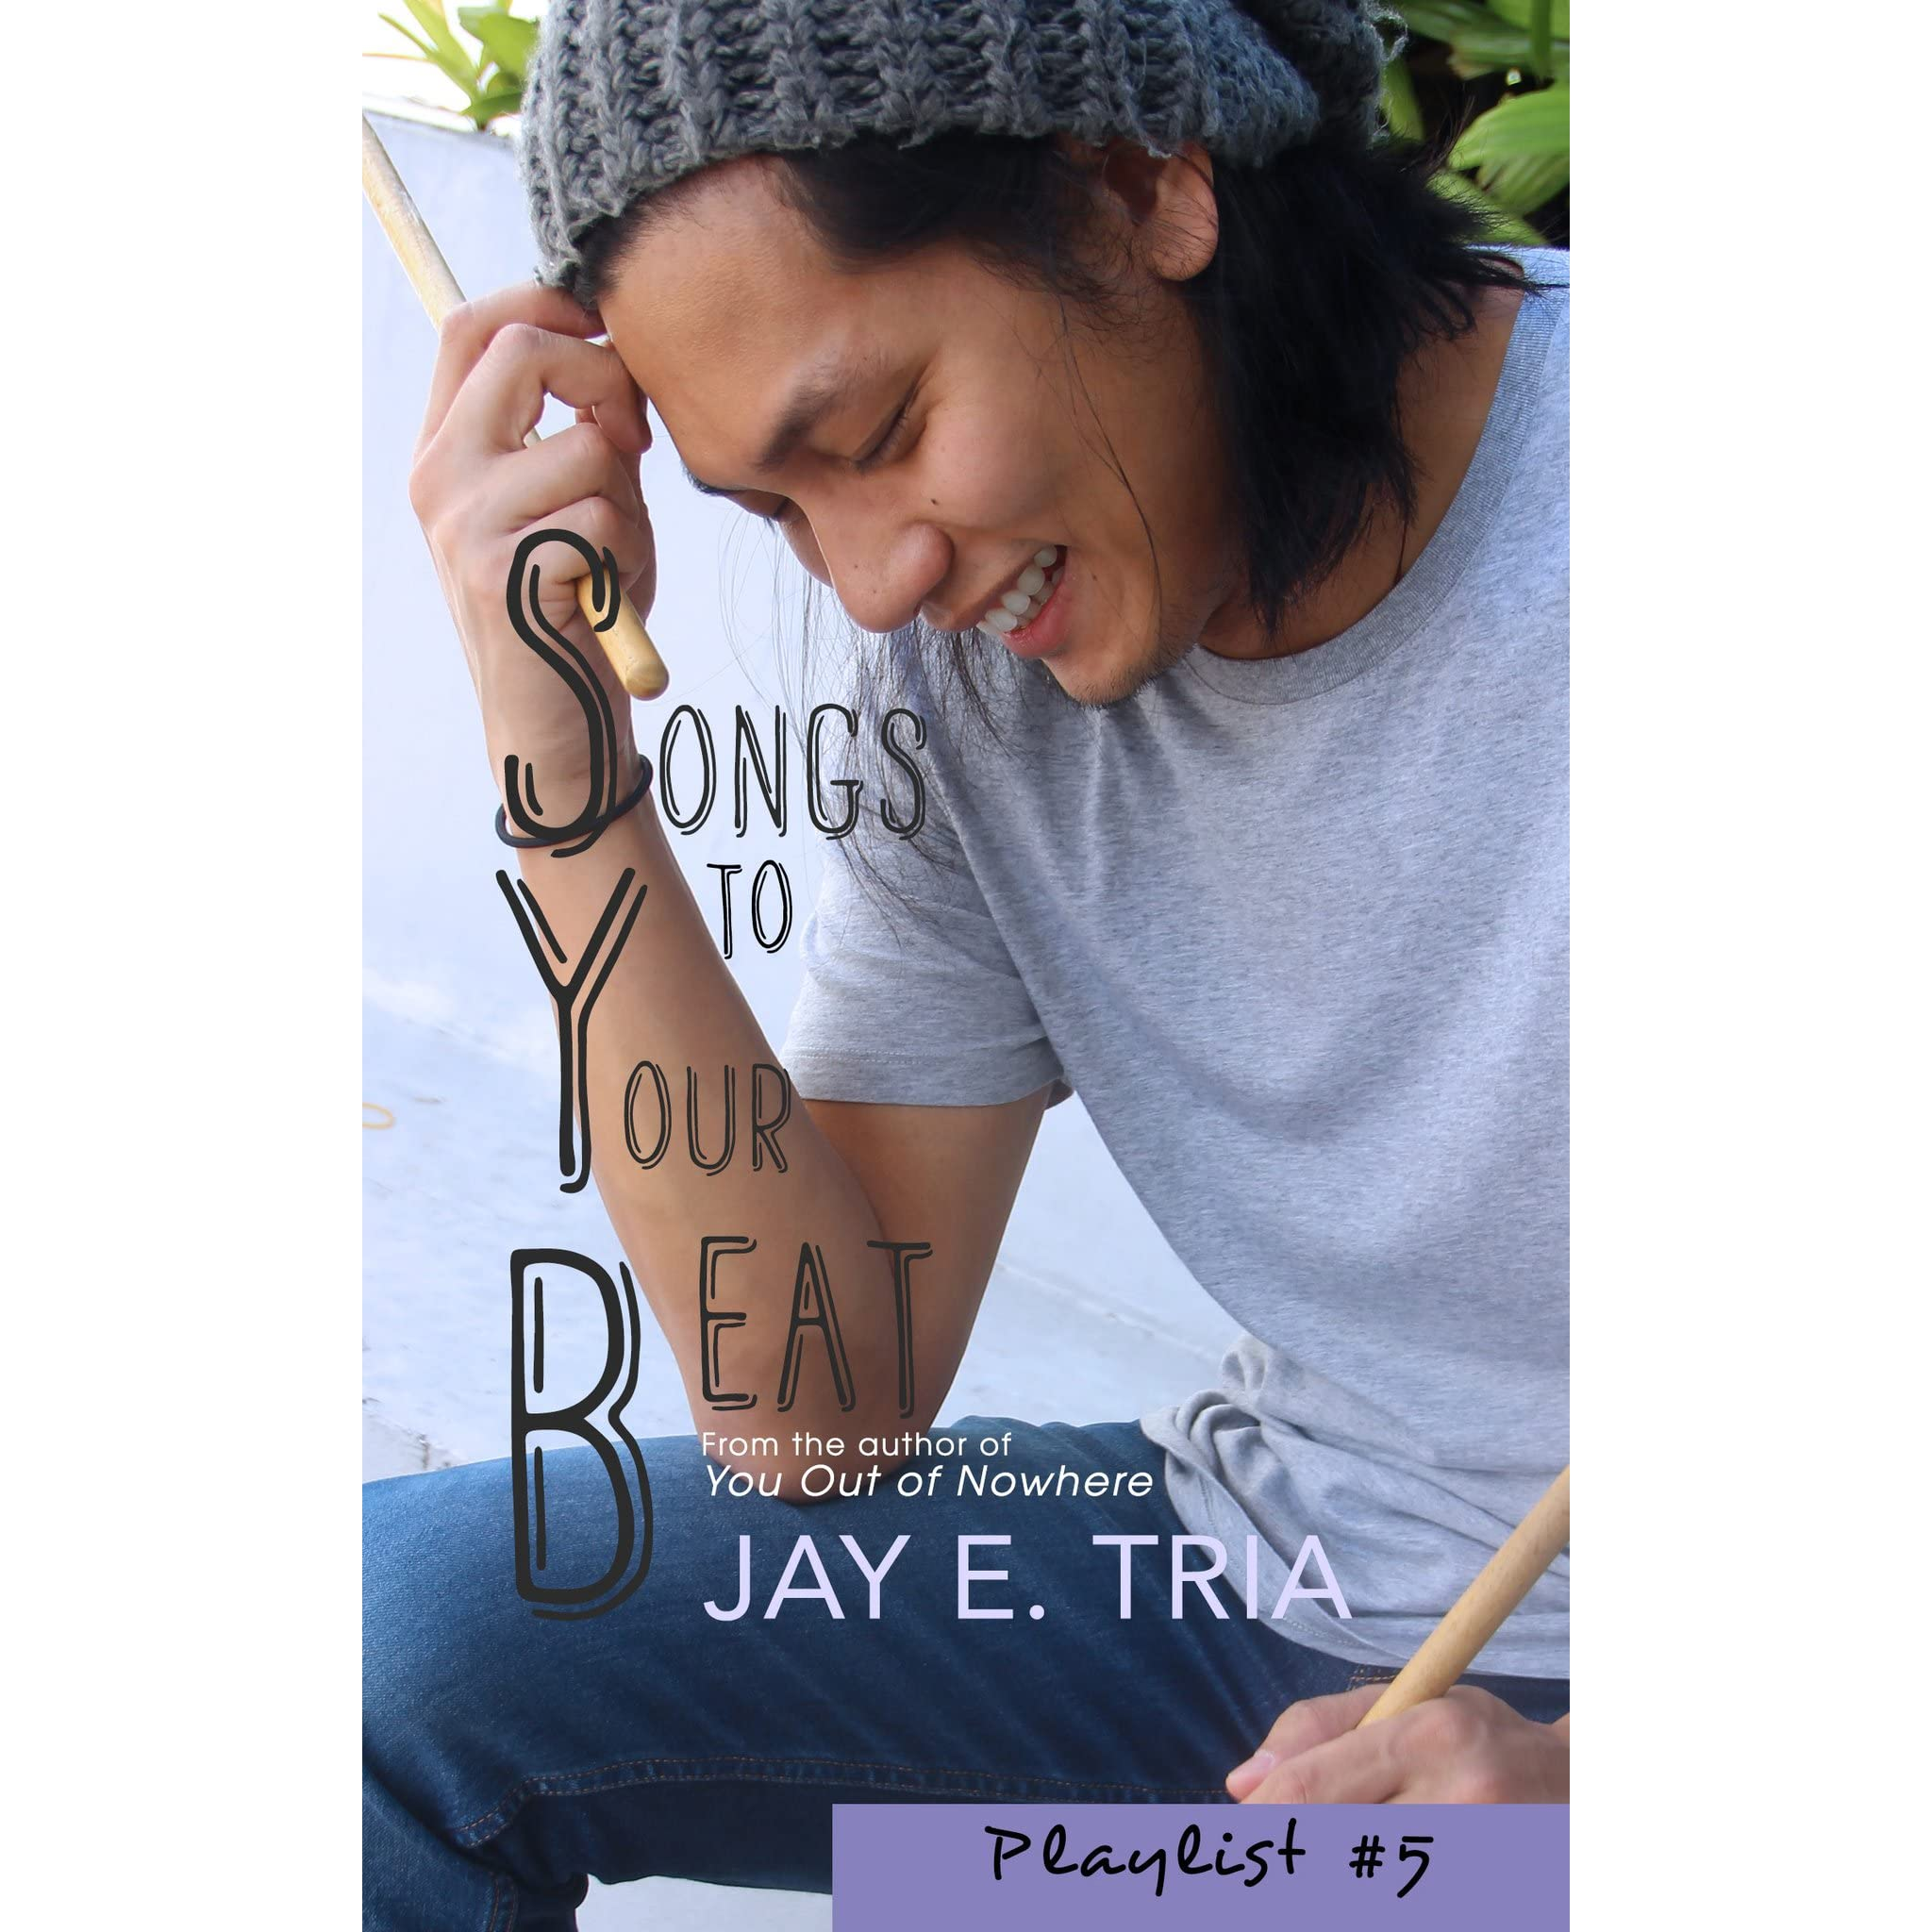 Songs to Your Beat by Jay E. Tria